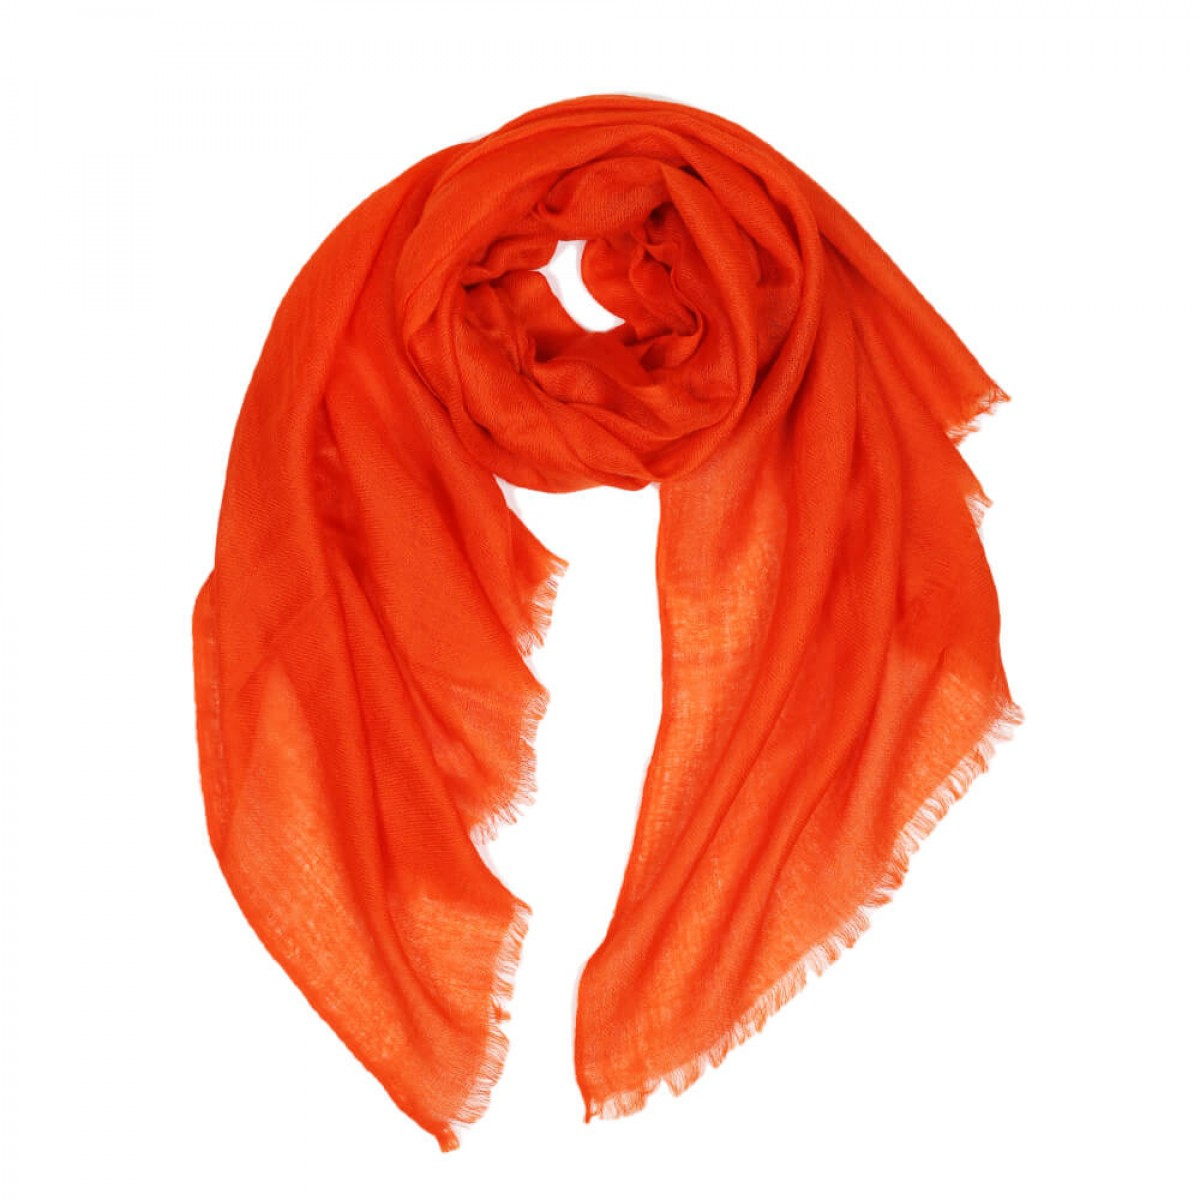 Sheer Pashmina Scarf - Torii Red